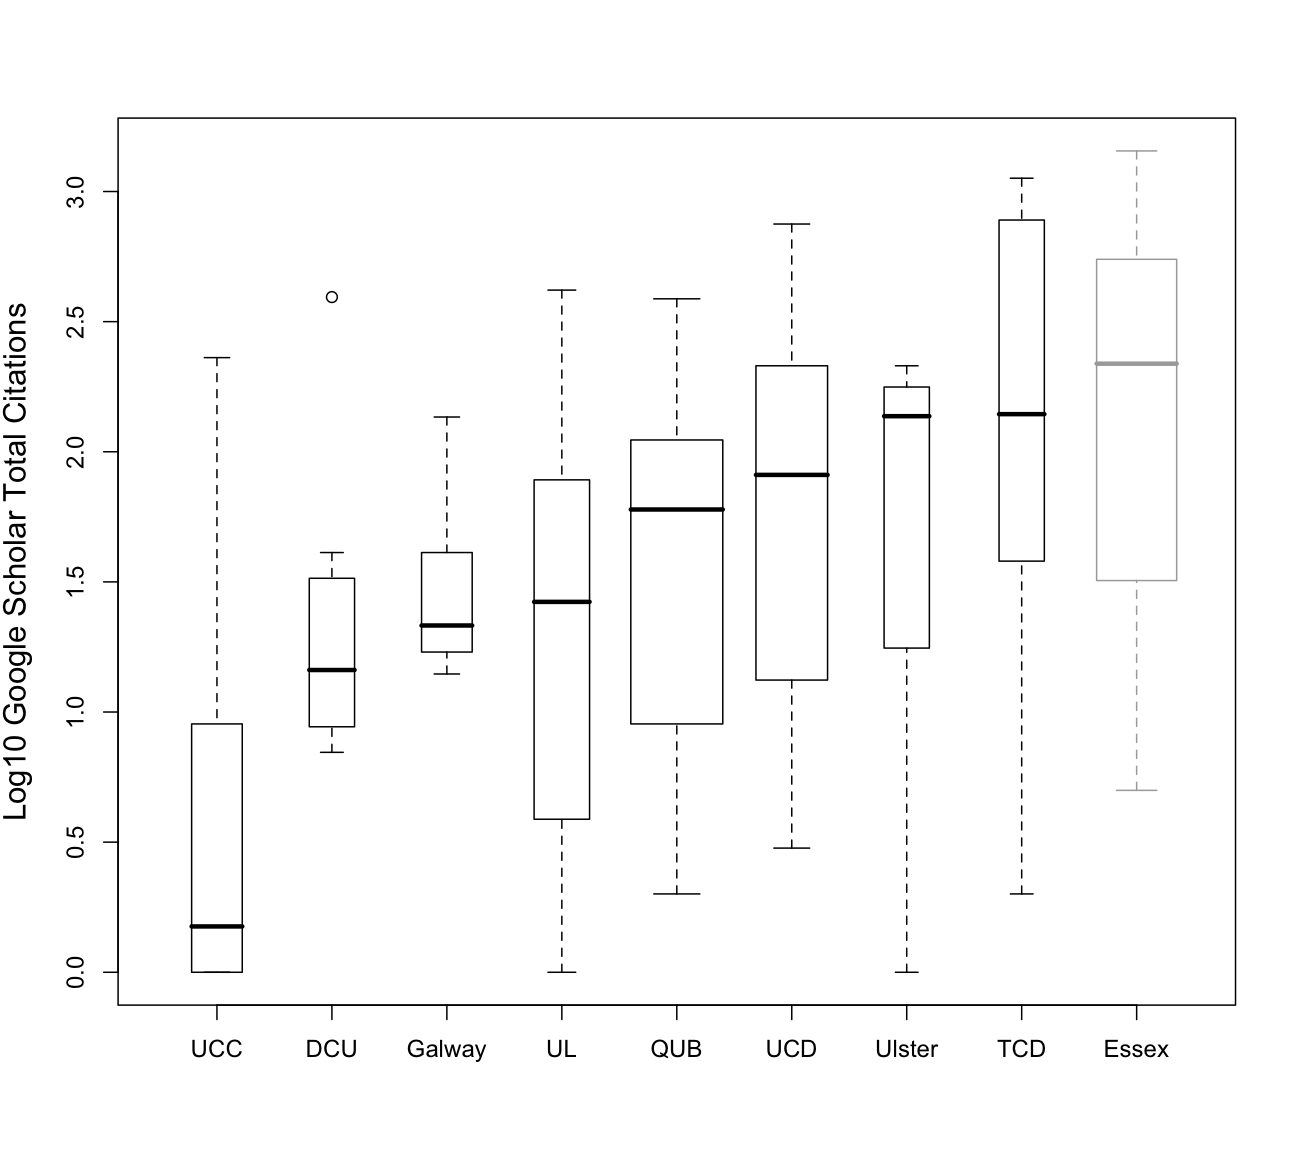 Boxplot of overall impact by department, measured as total Google citations